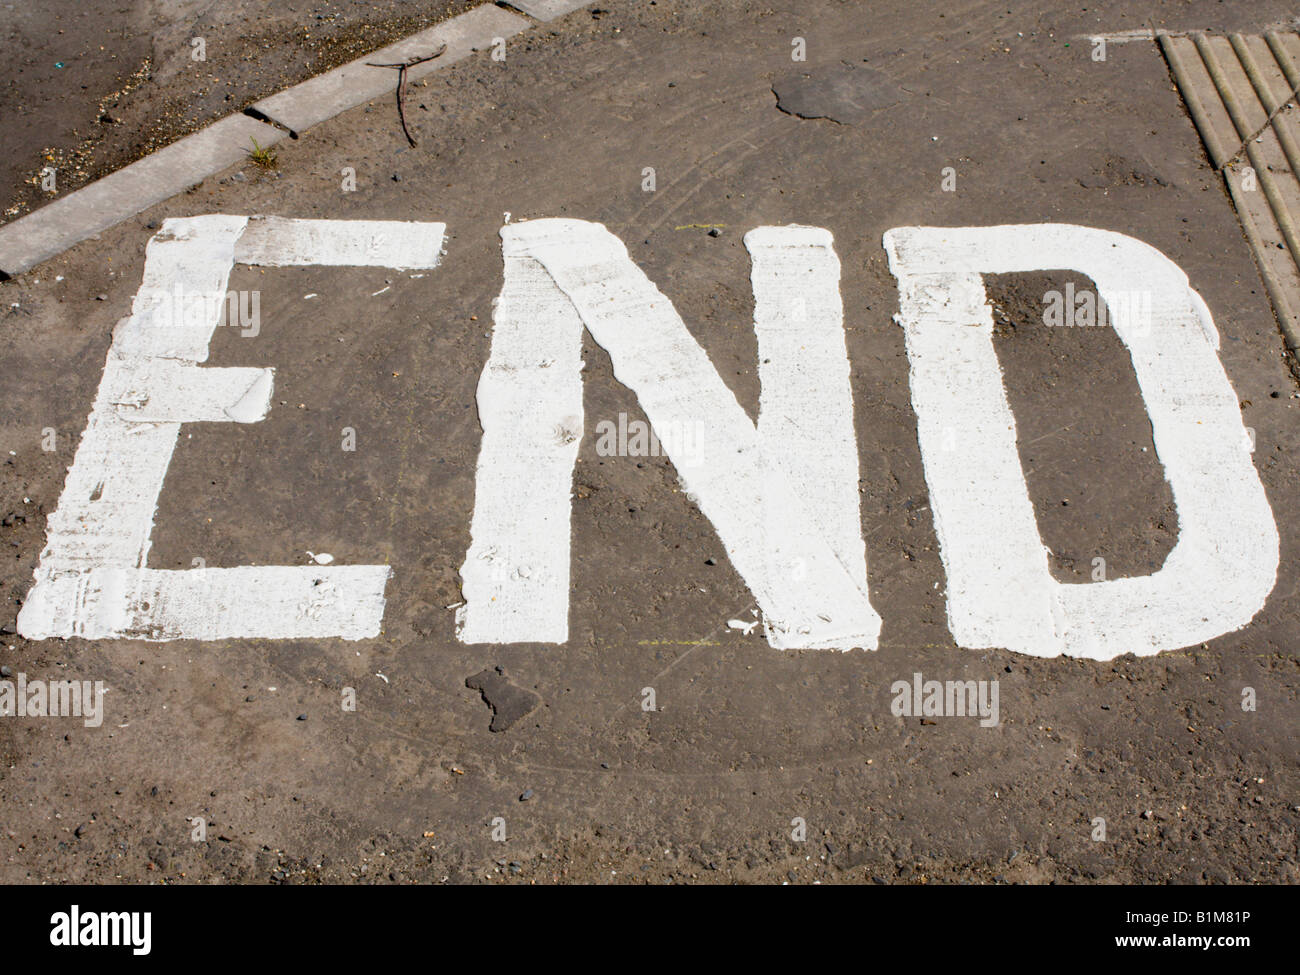 End printed on a pavement - Stock Image